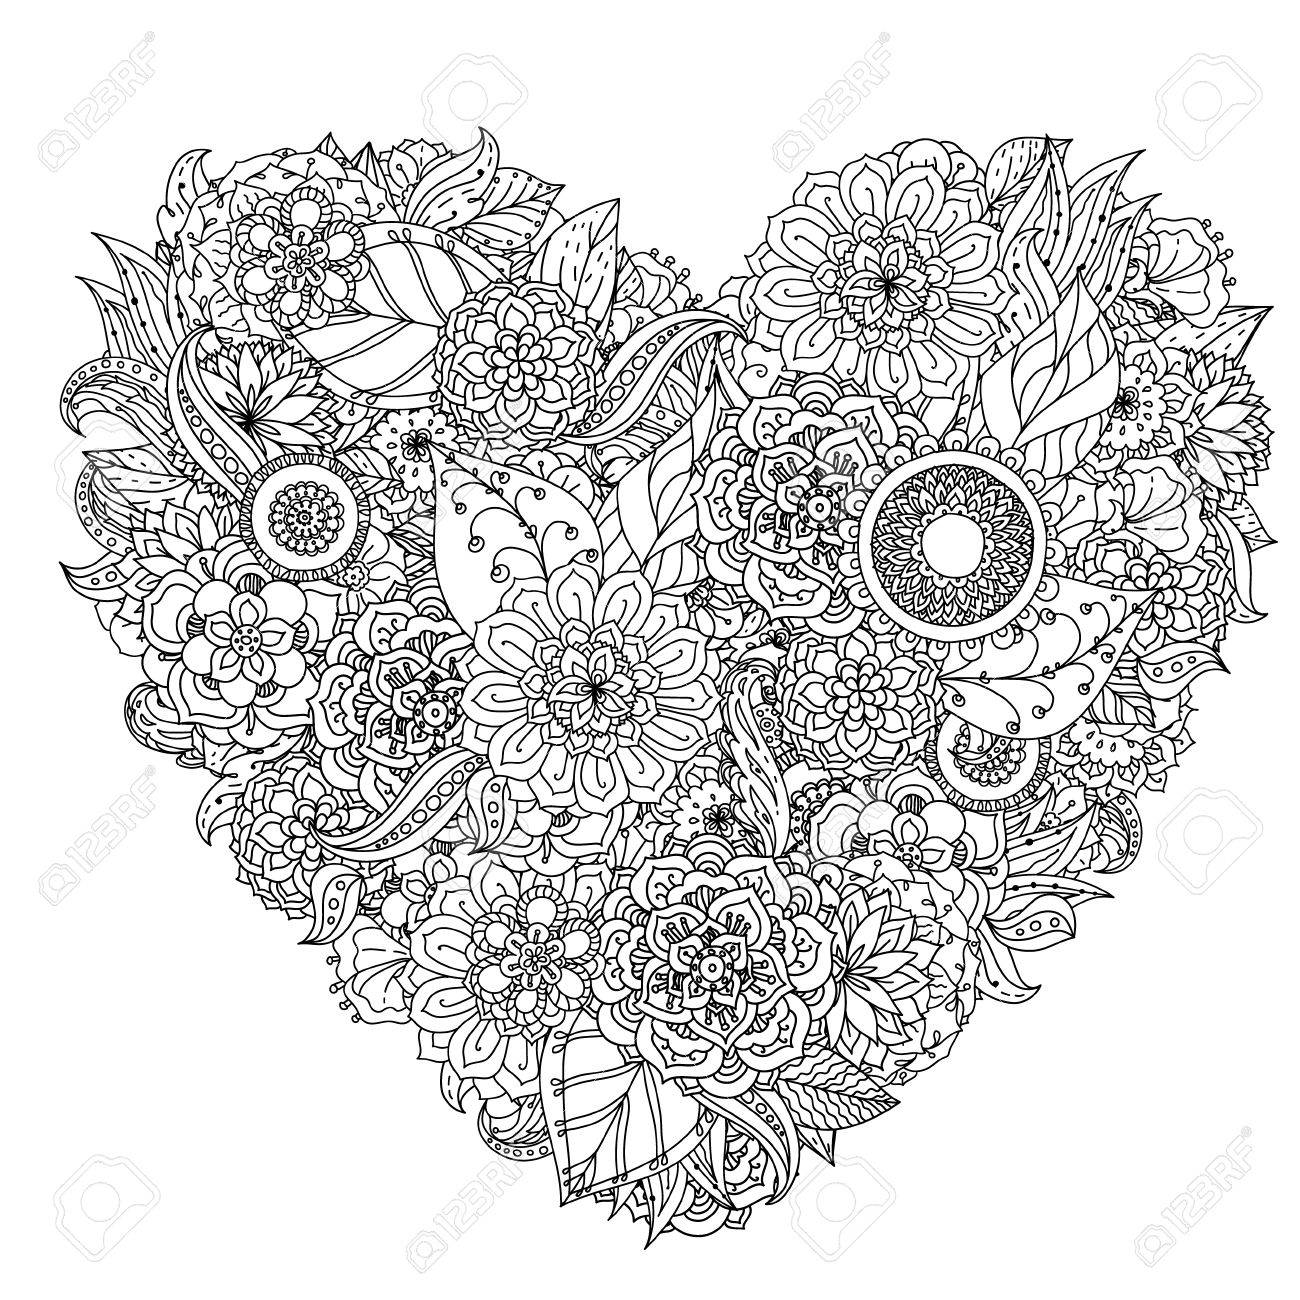 Hand Drawing Element Black And White Flower Mandala Style Royalty